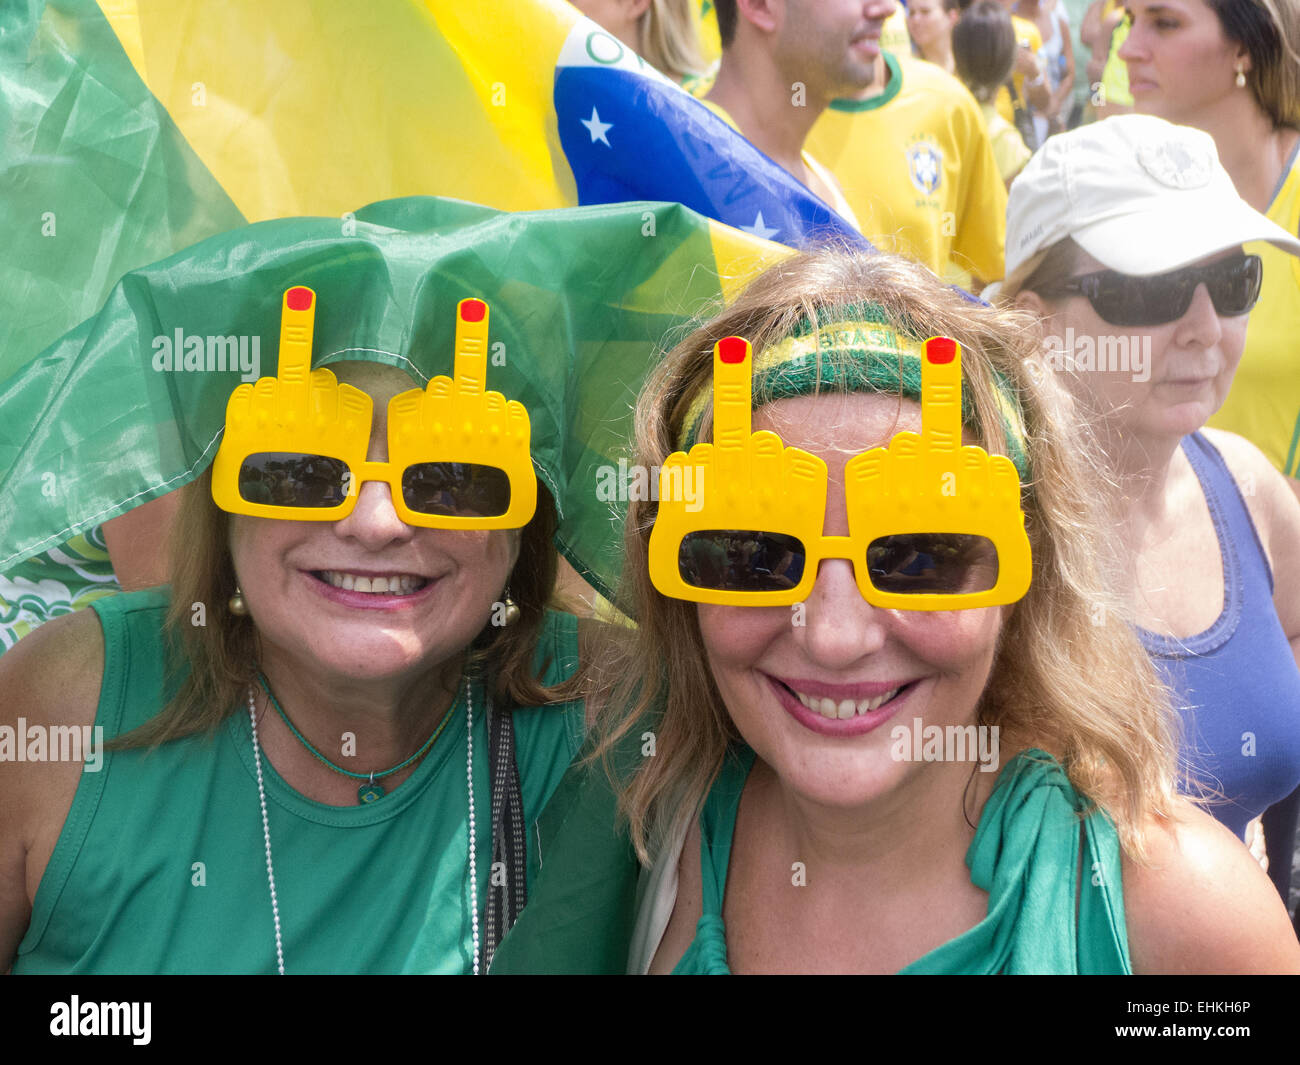 Two youg women wear sunglasses with a middle finger raised in protest. Rio de Janeiro, Brazil. Demonstration against - Stock Image